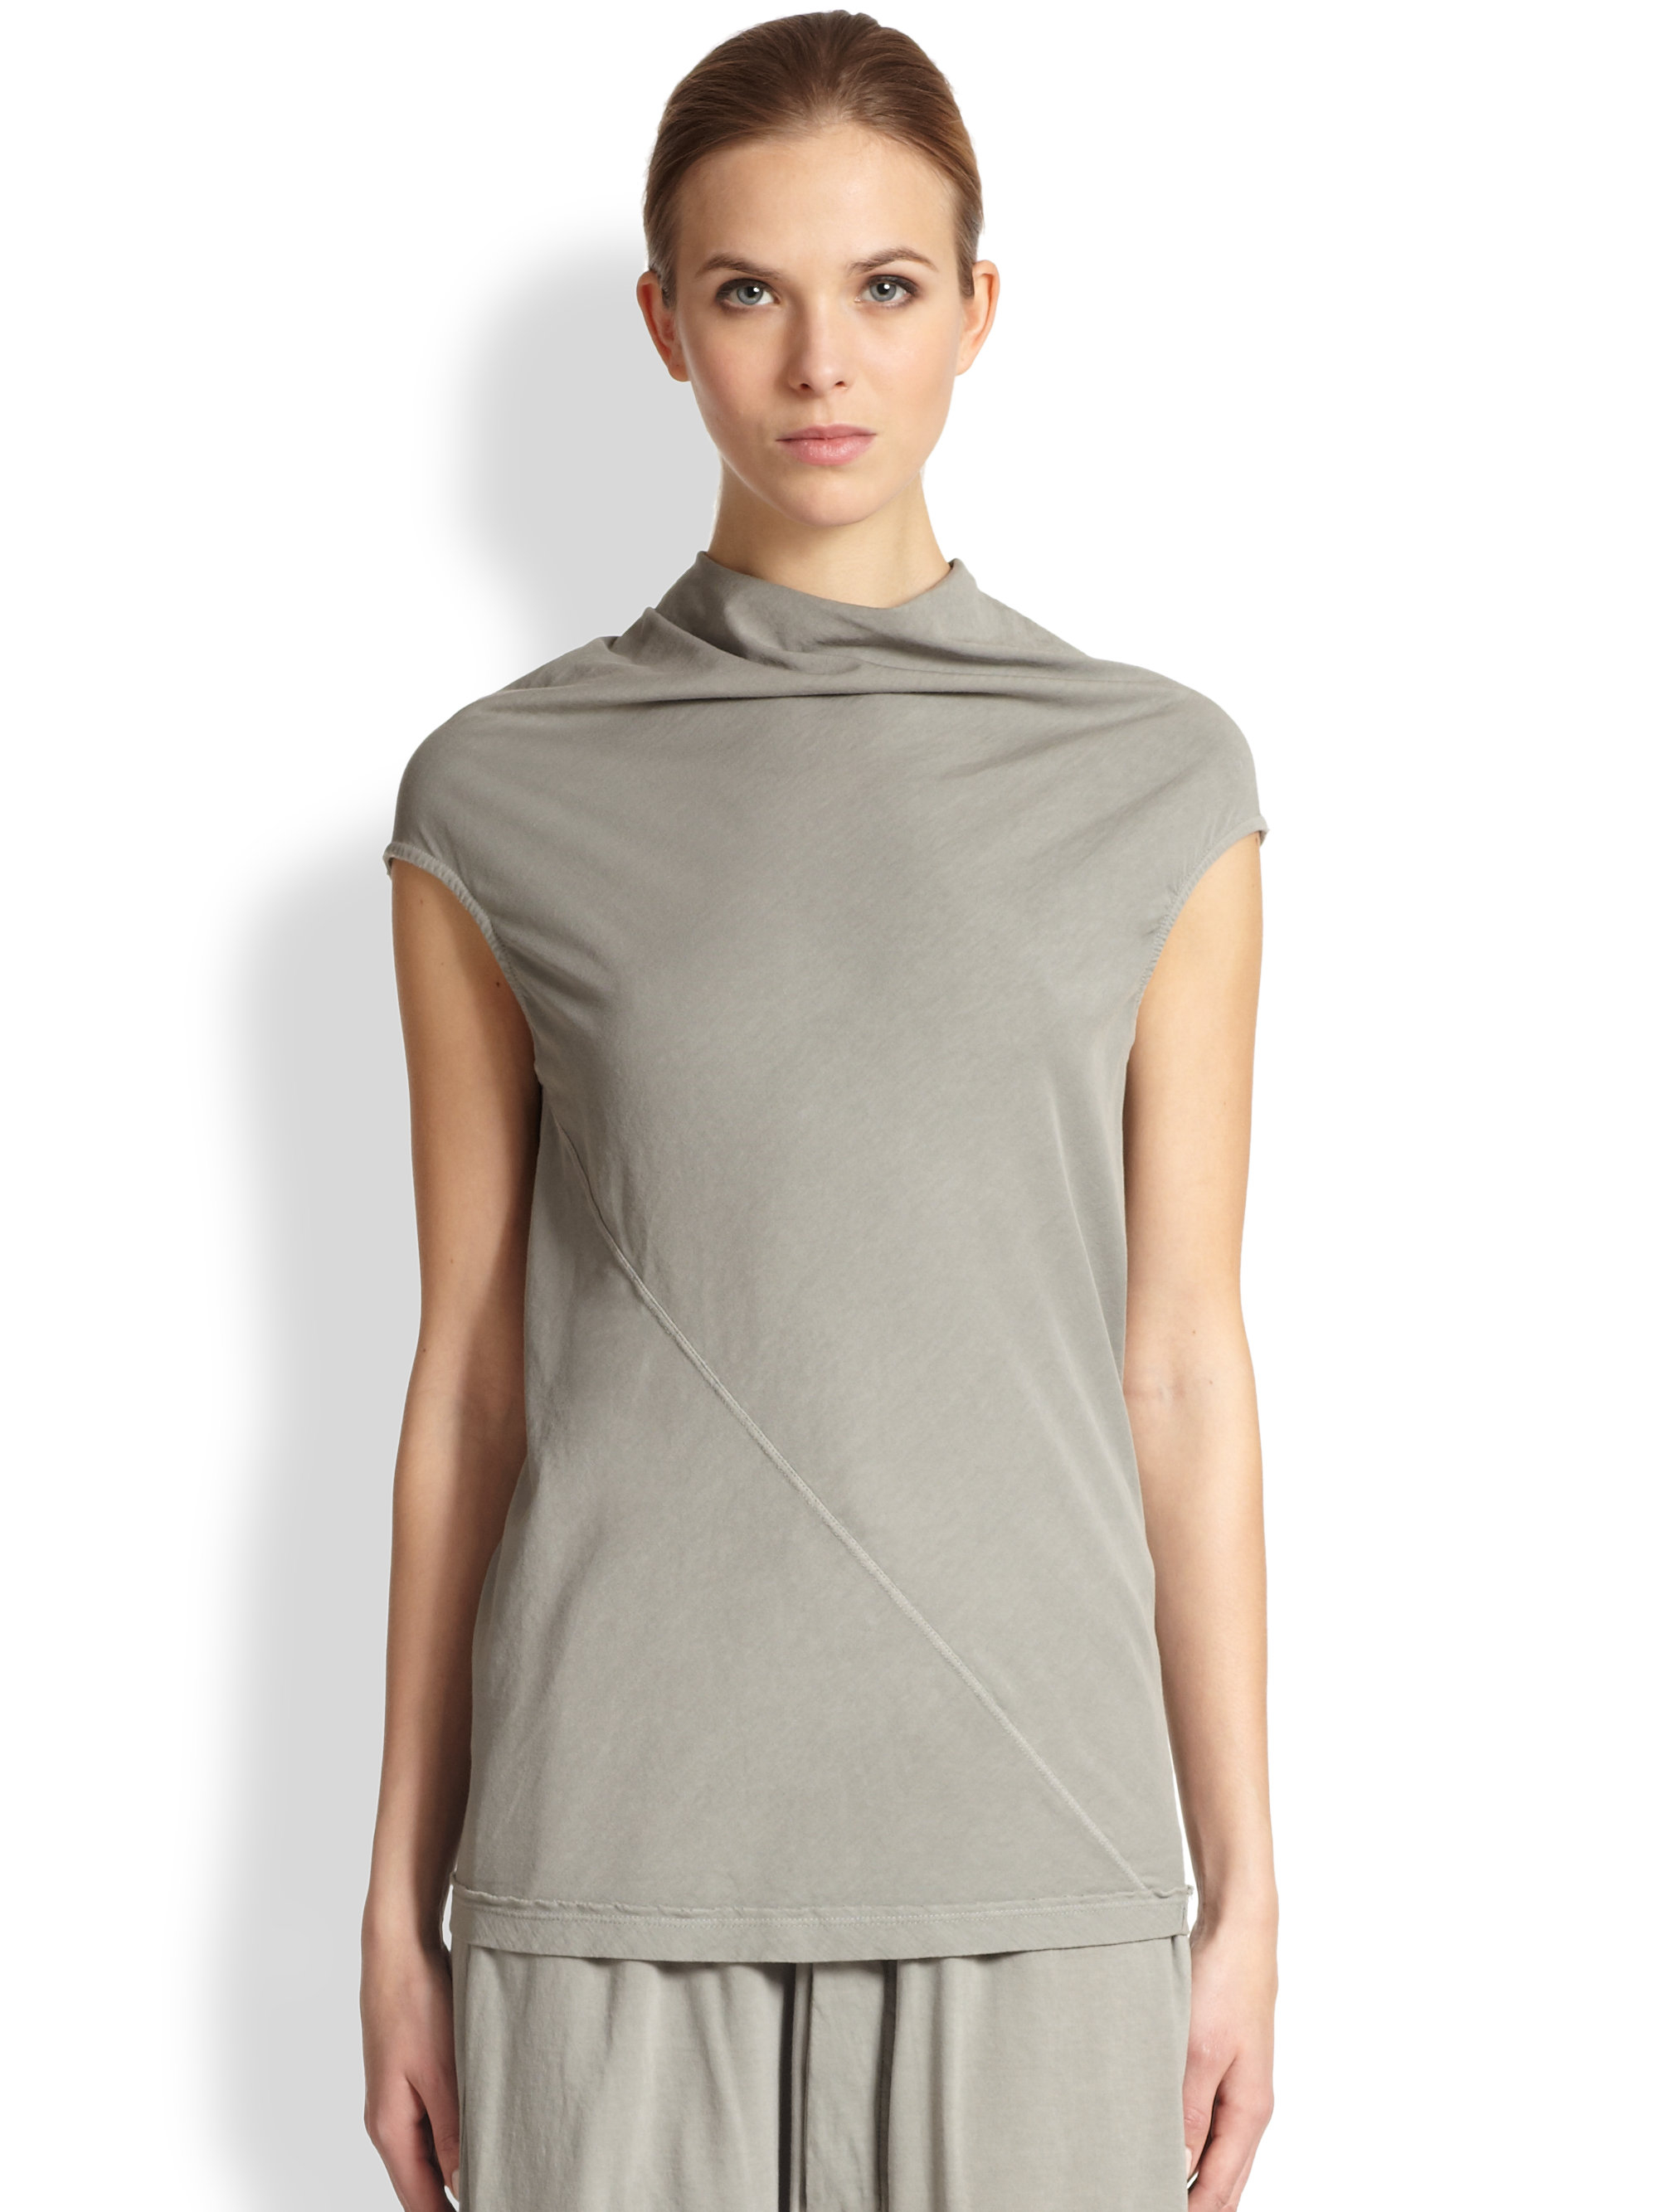 Discount Pay With Visa Buy Cheap Great Deals Bonnie top - Metallic Rick Owens Genuine Sale Online How Much For Sale Brand New Unisex Sale Online dXvUWeNZ